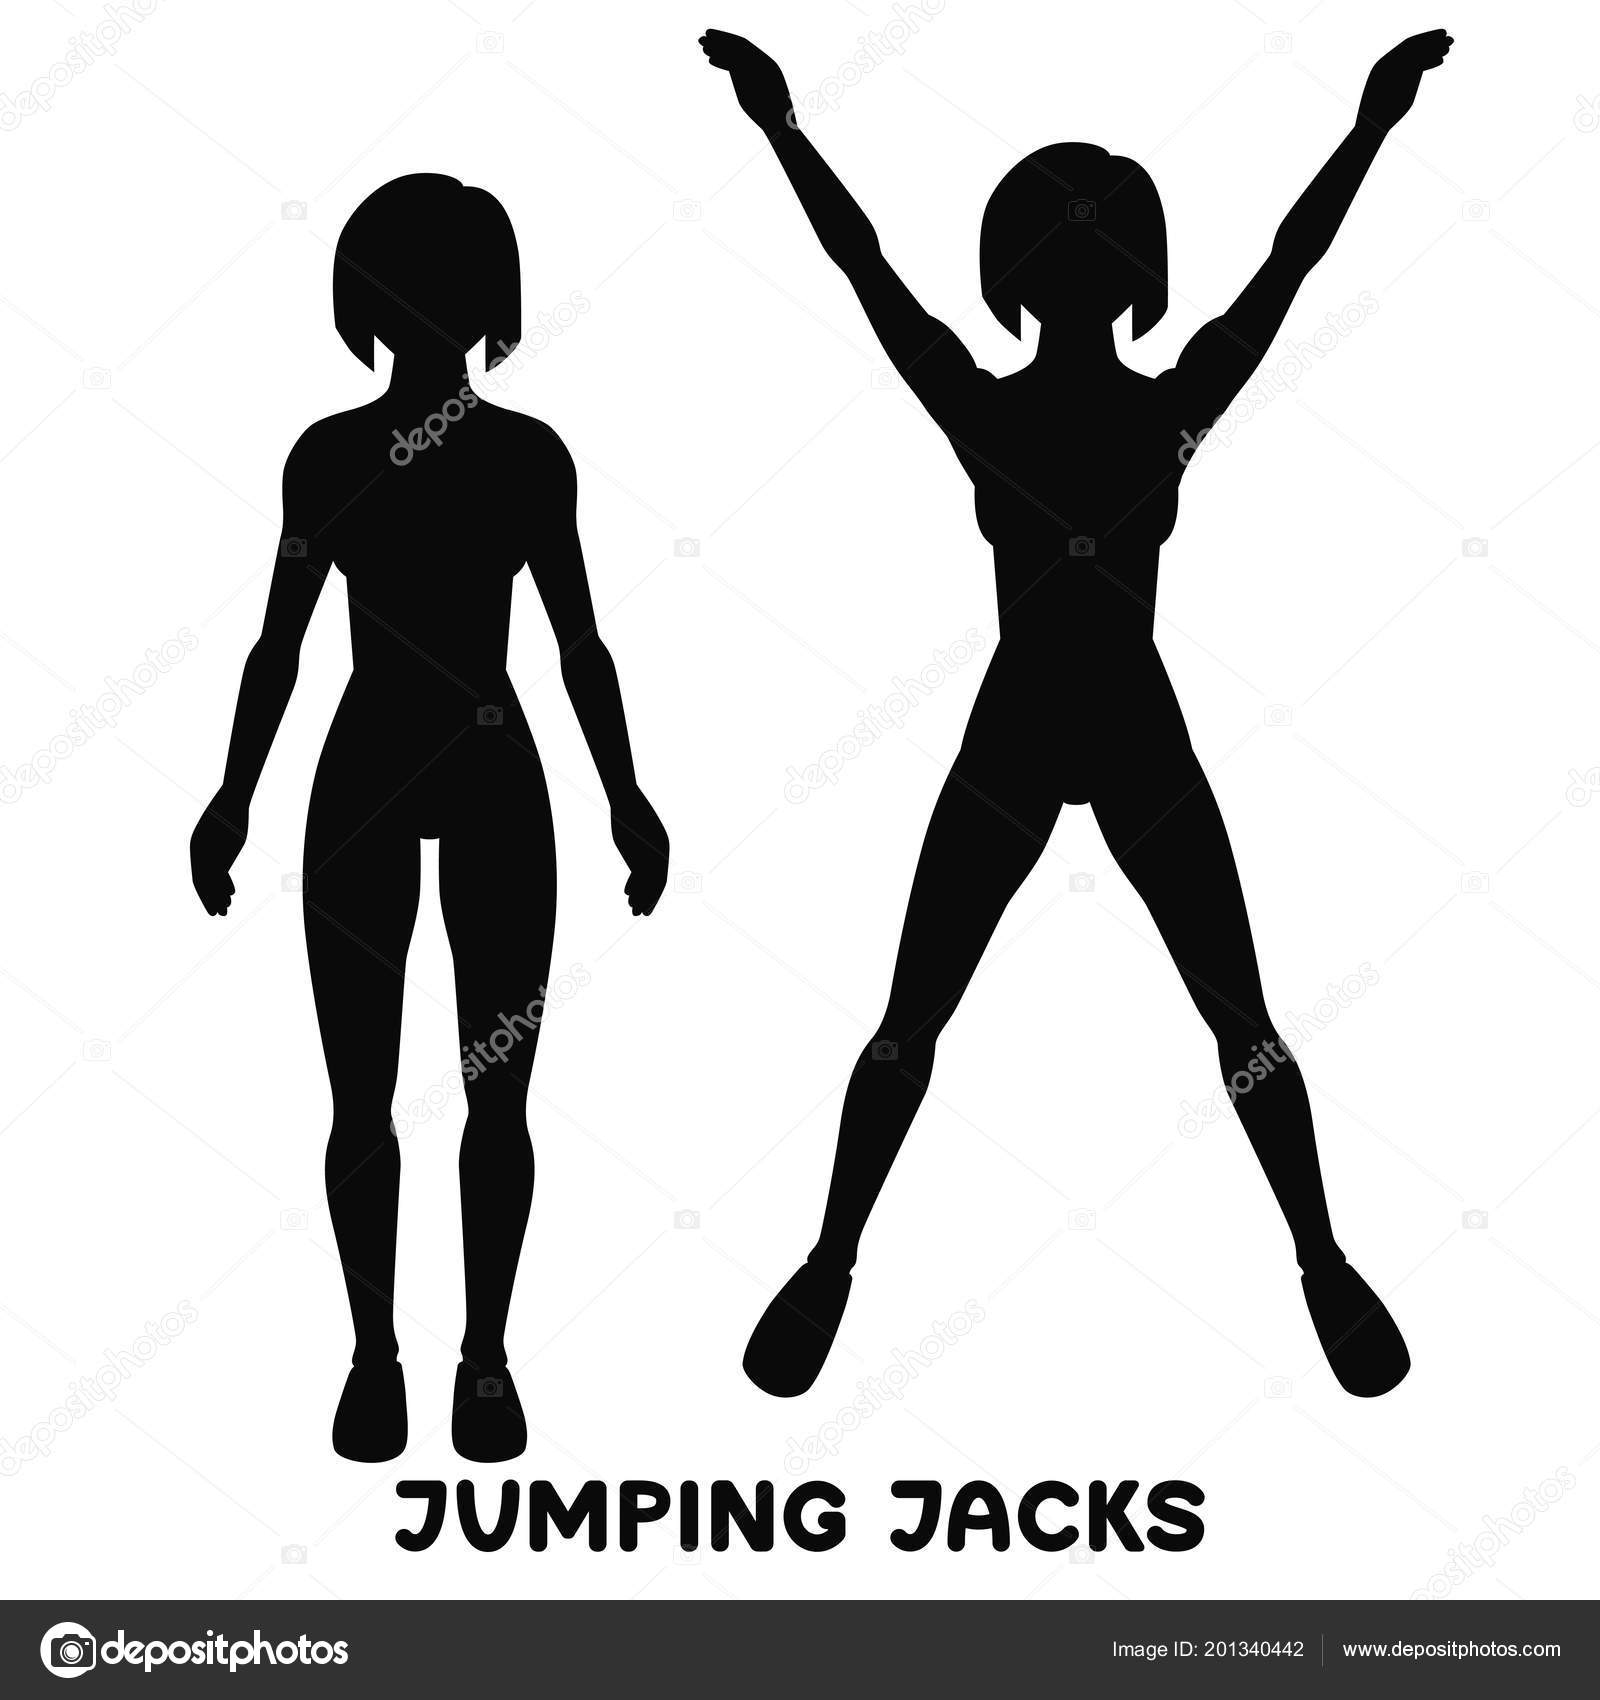 jumping jack sport exersice silhouettes of woman doing exercise 100 Jumping Jacks Workout jumping jack sport exersice silhouettes of woman doing exercise workout training vector illustration vector by otom0